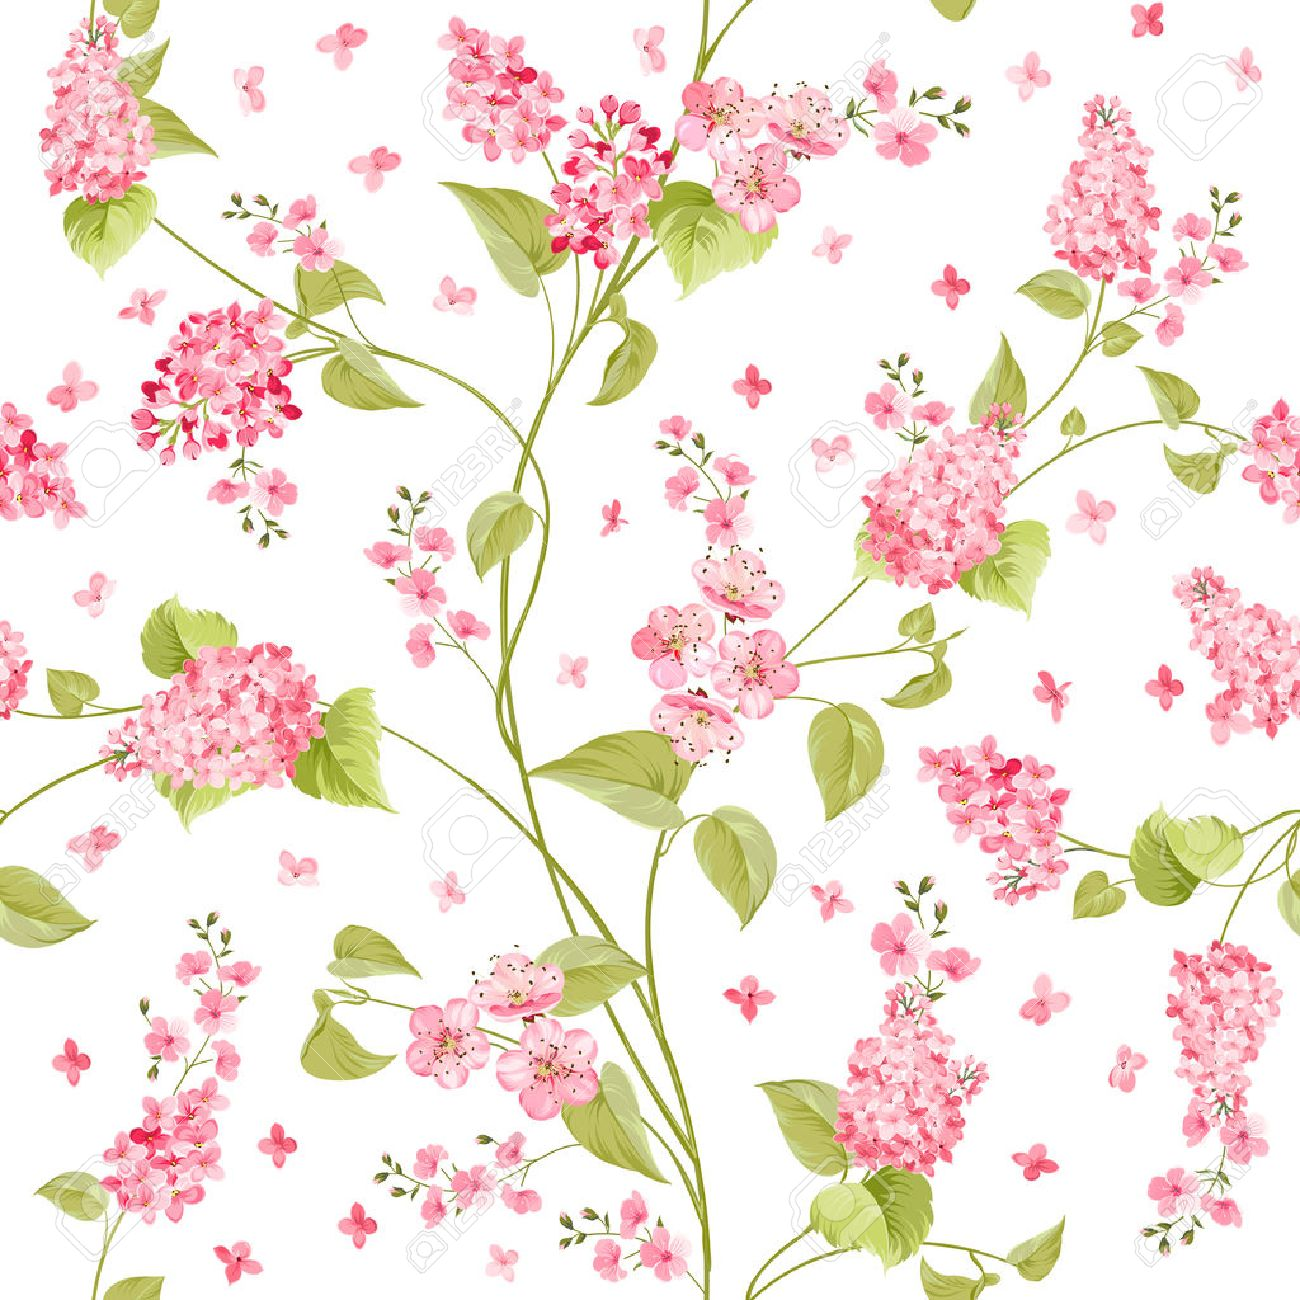 Pink floral seamless vector background floral hrysanthemum seamless - Fabric Texture Pattern With Seamless Flowers The Floral Seamless Pattern Over Light Background Flower